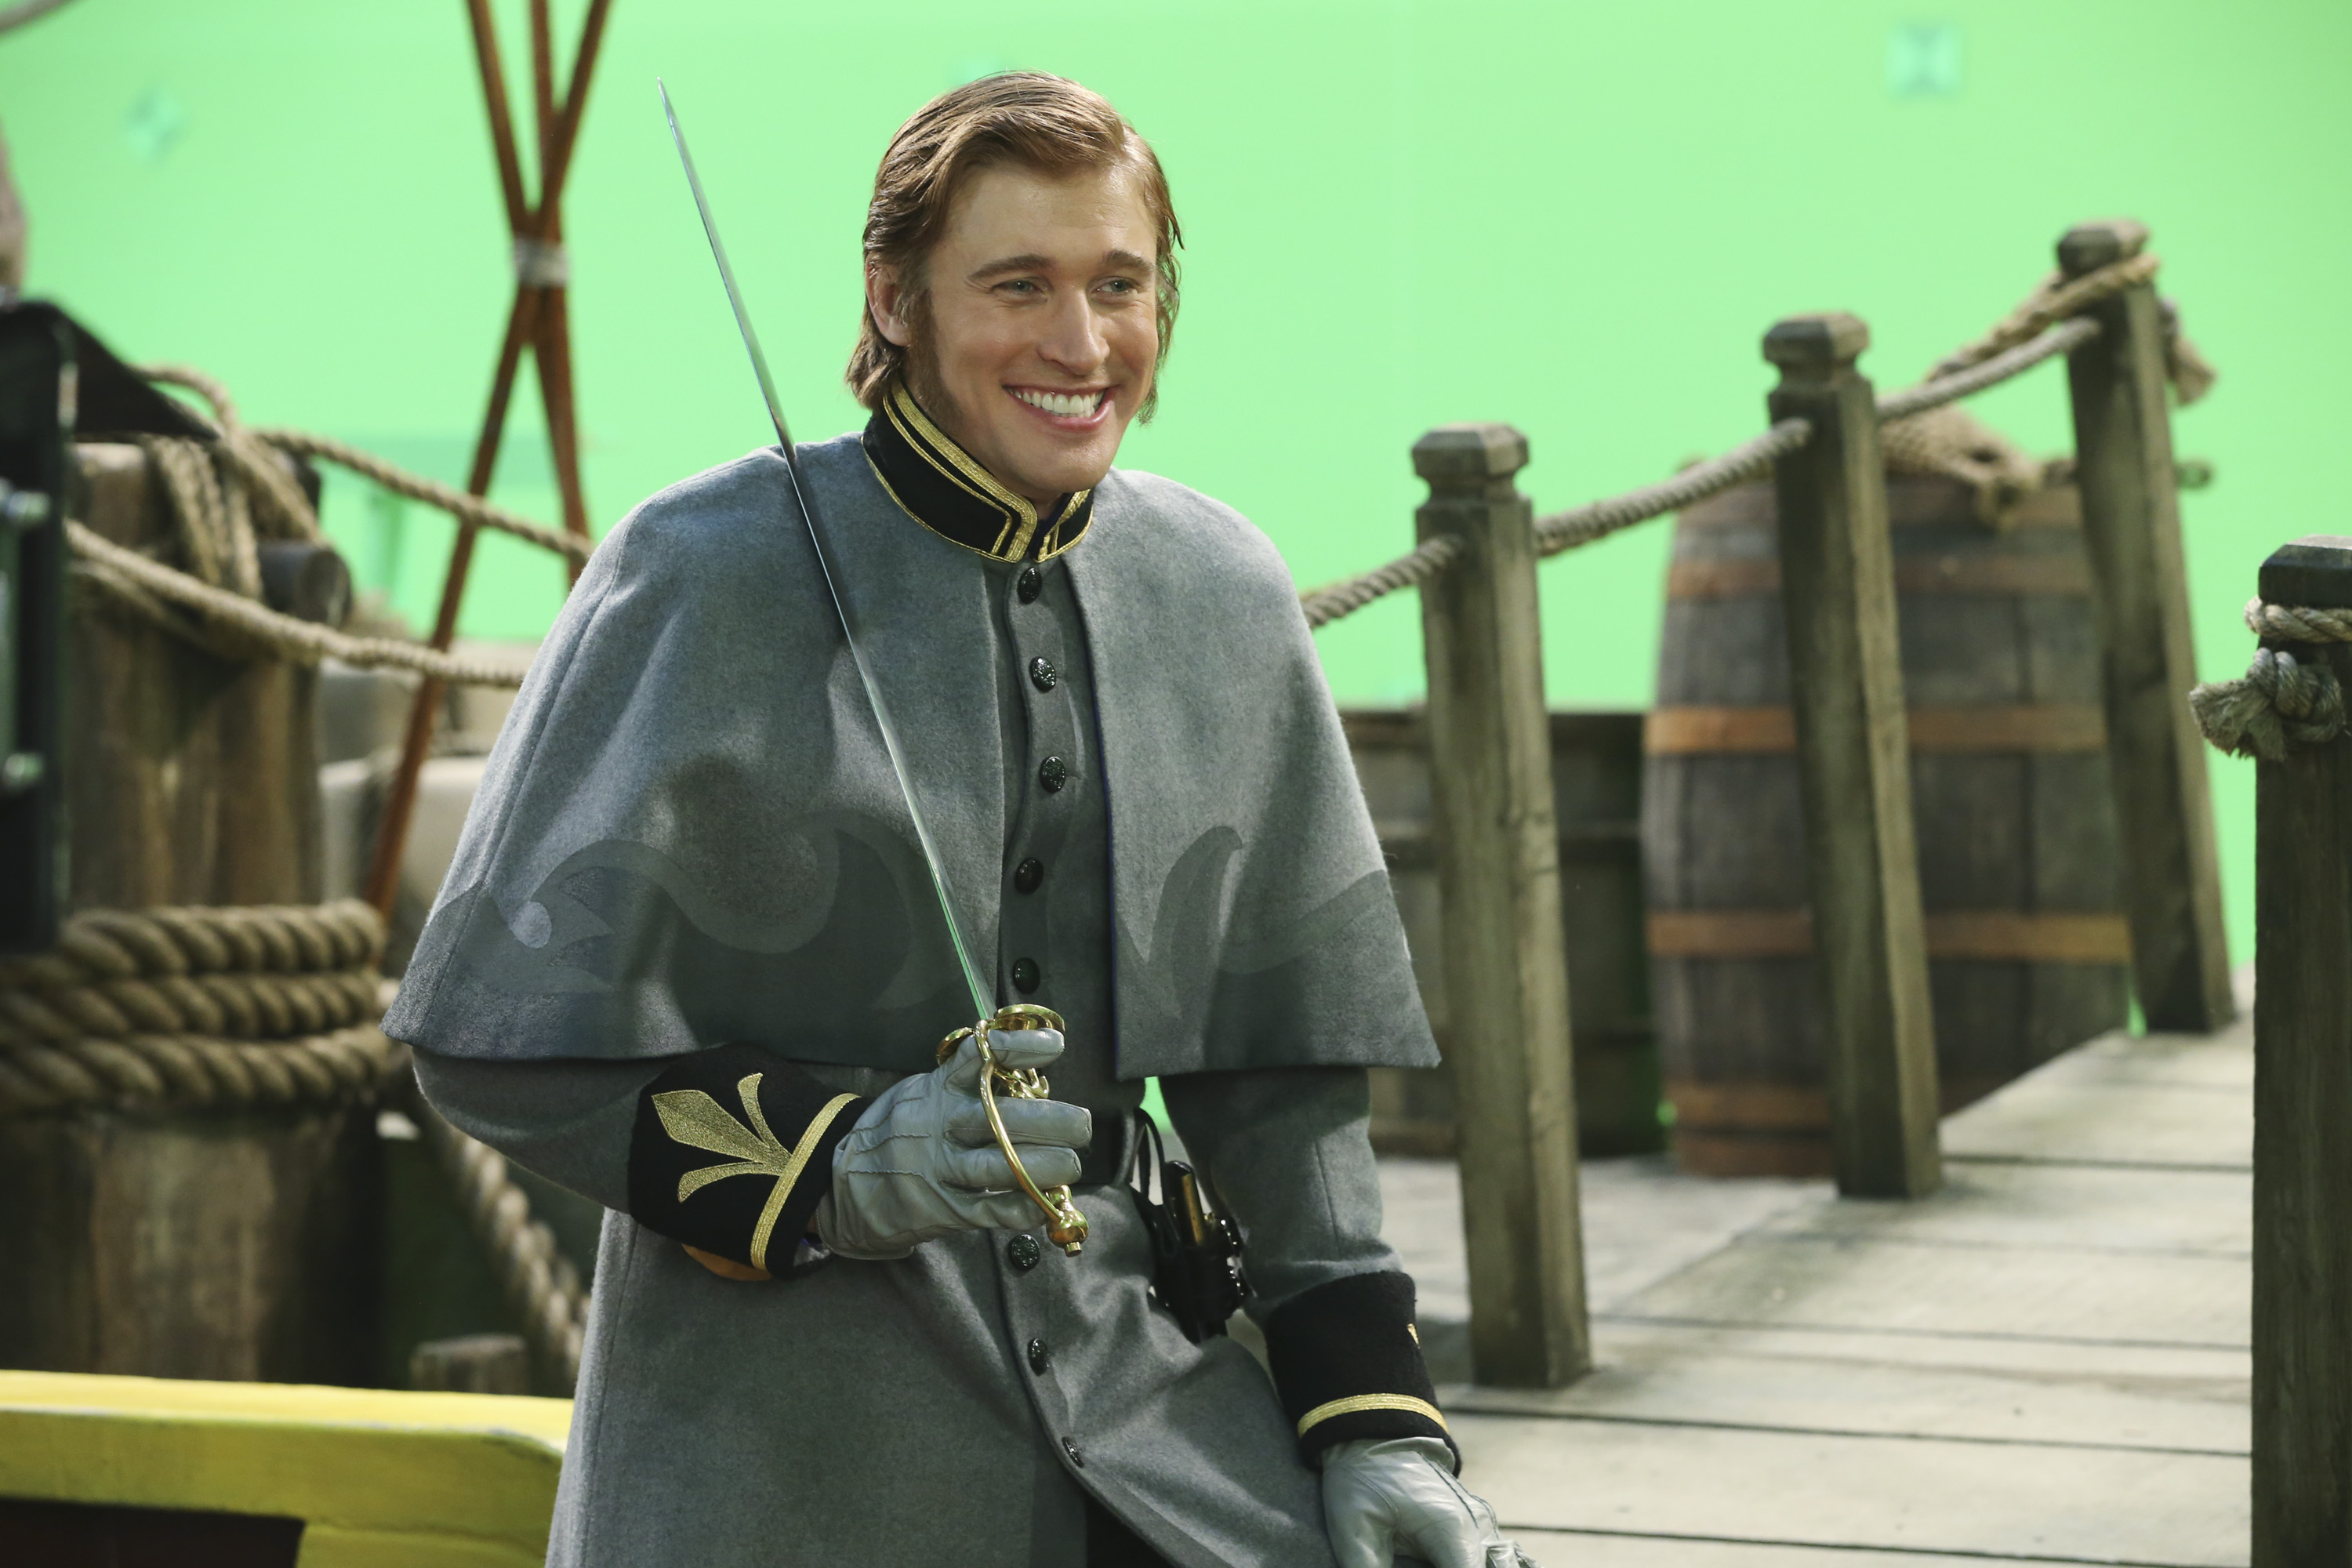 Hans Once Upon A Time